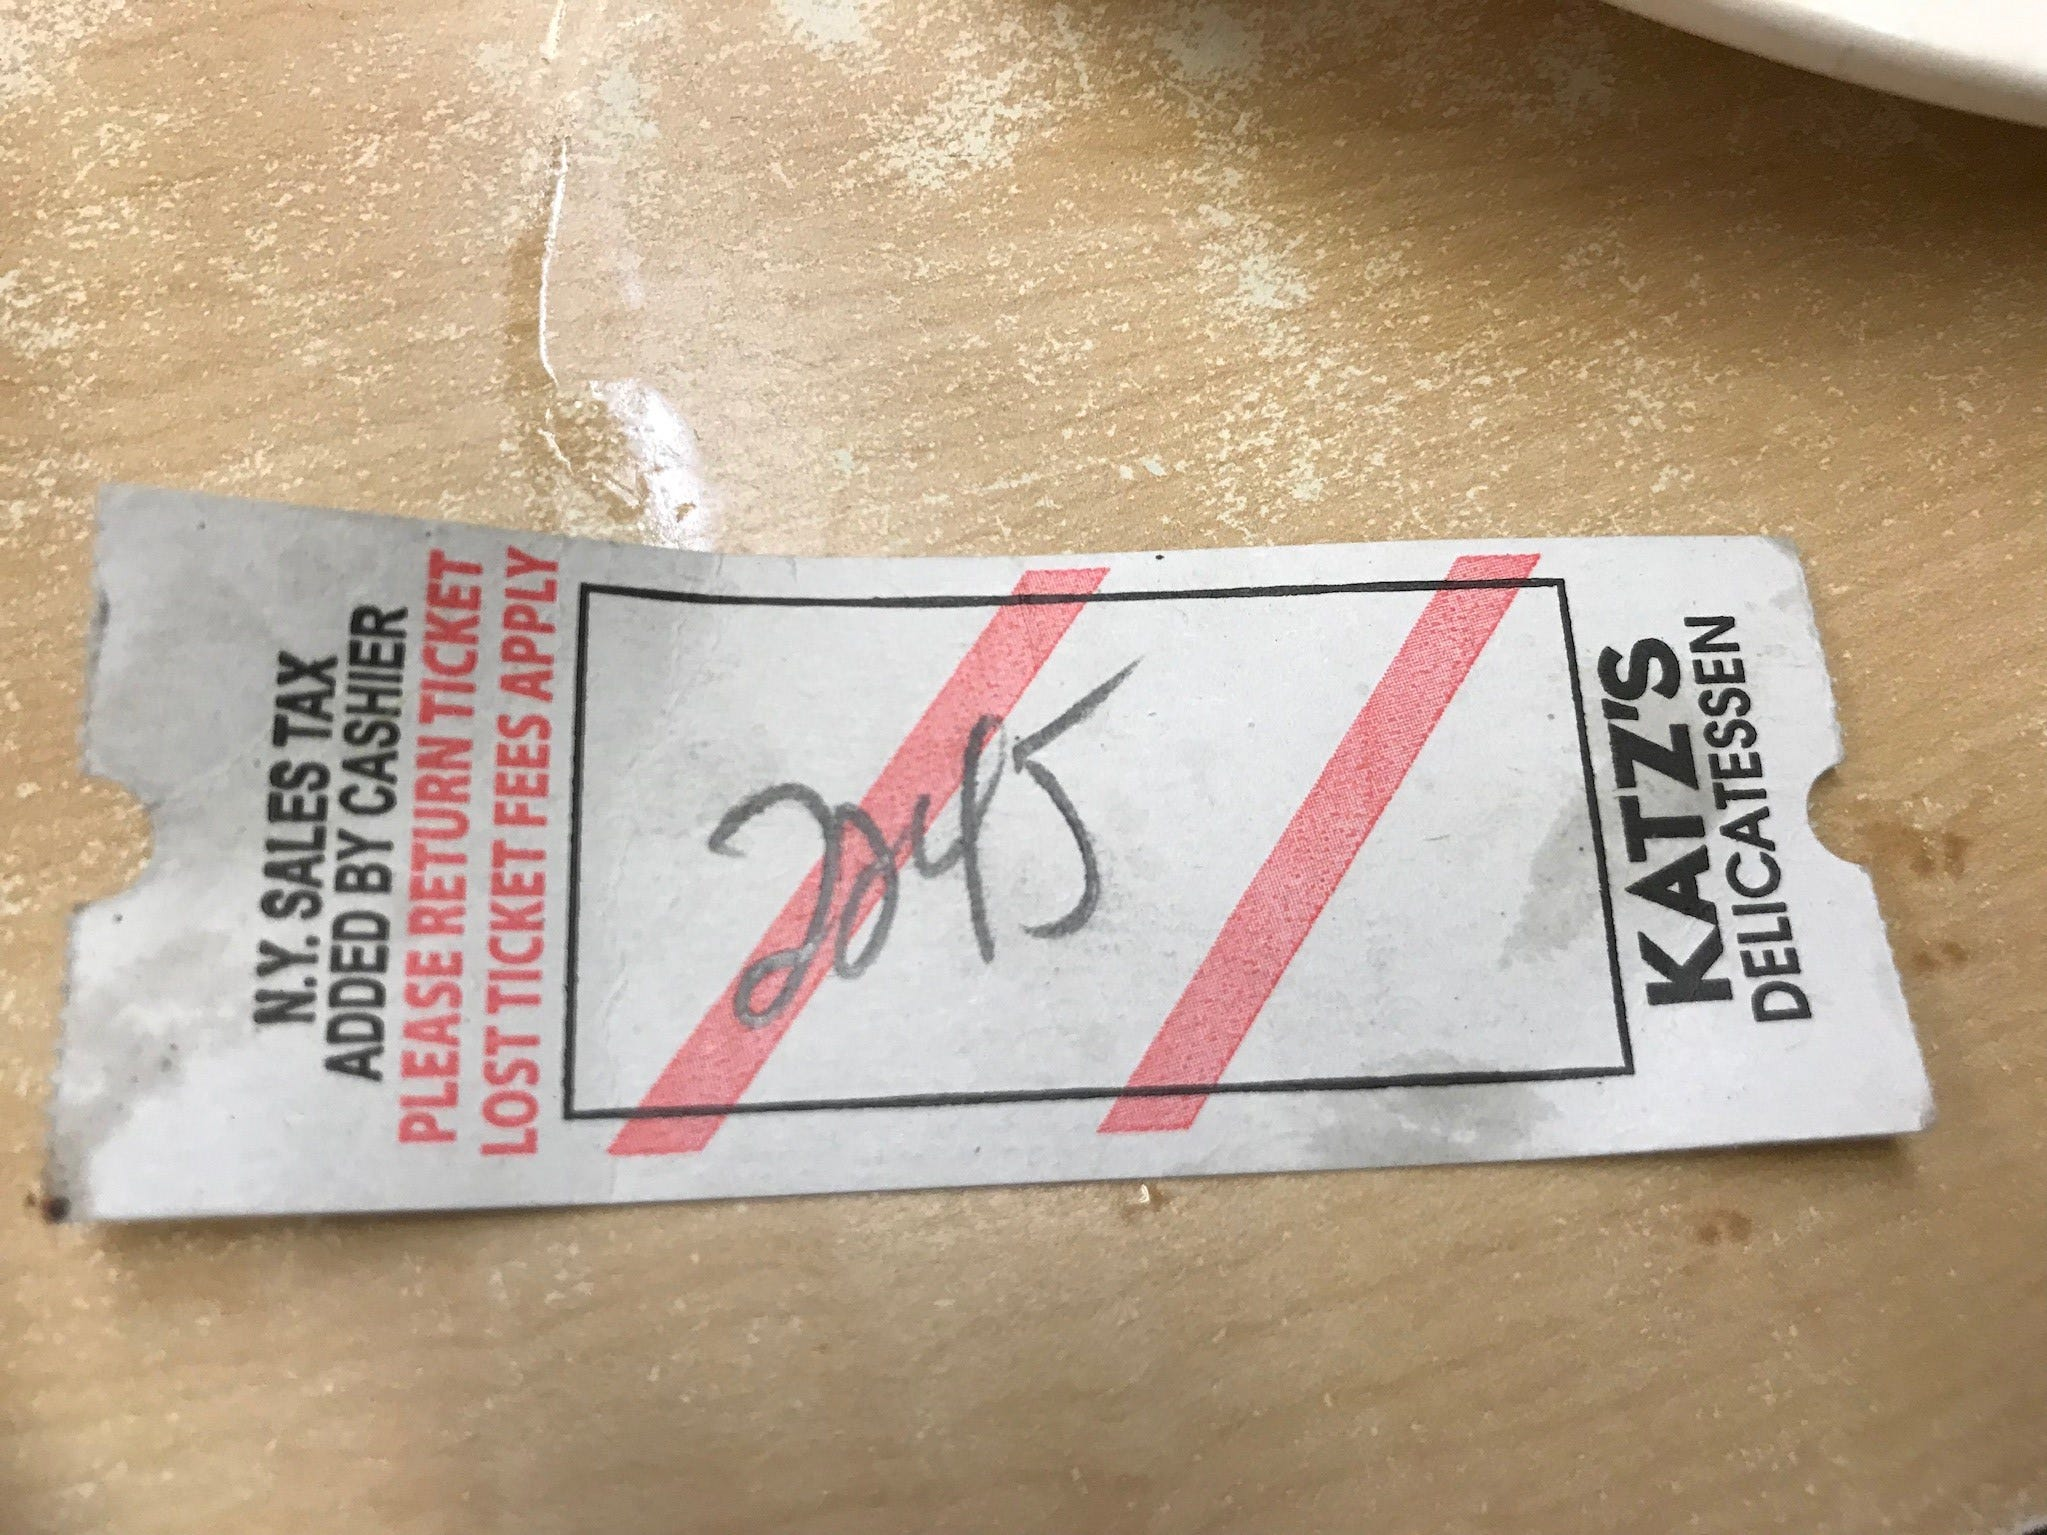 Every arriving customer gets a blank ticket, and servers write the tally of orders on it to be paid at the end.